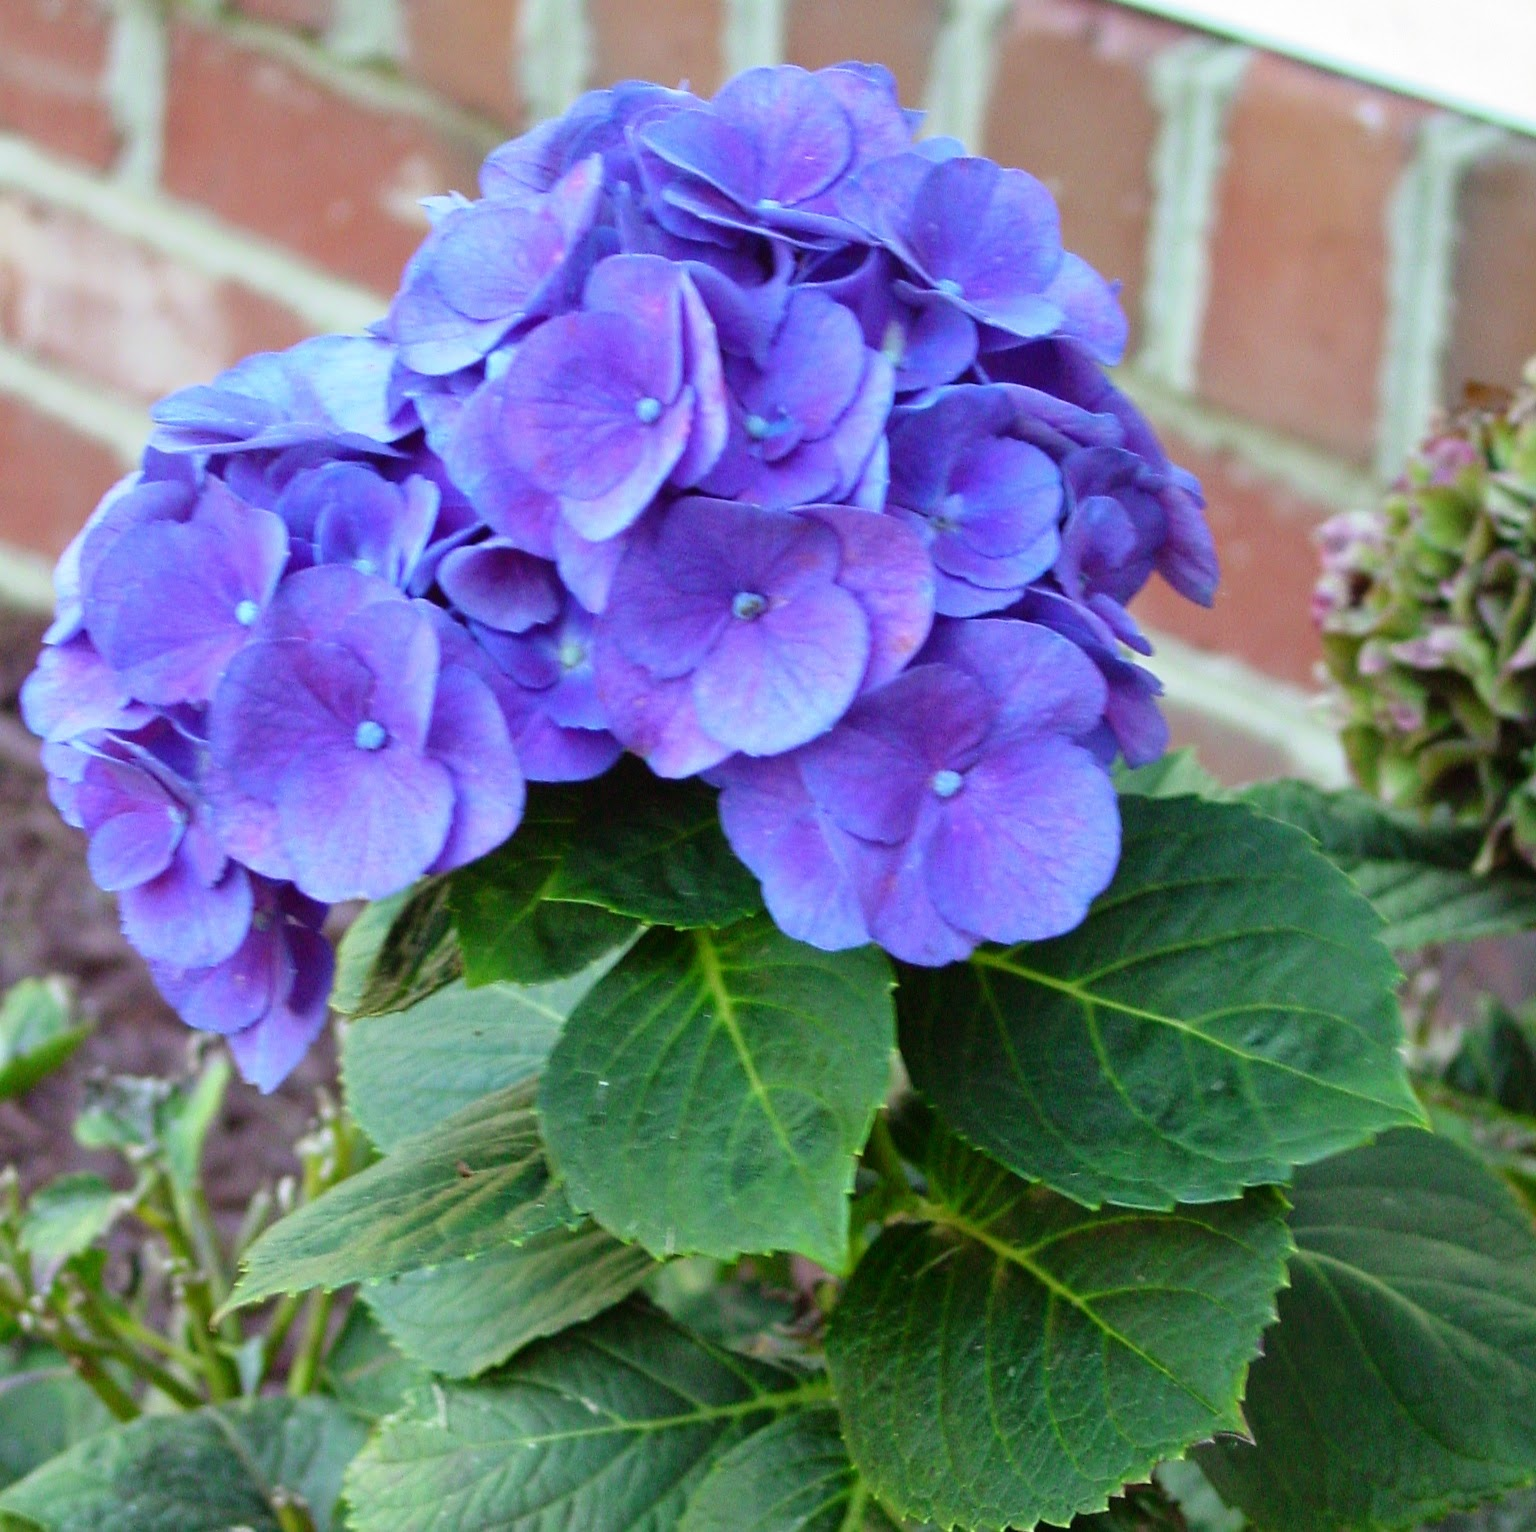 Hydrangea: 1st PINK, 2nd Pink/Blue, 3rd Almost Purple/blue